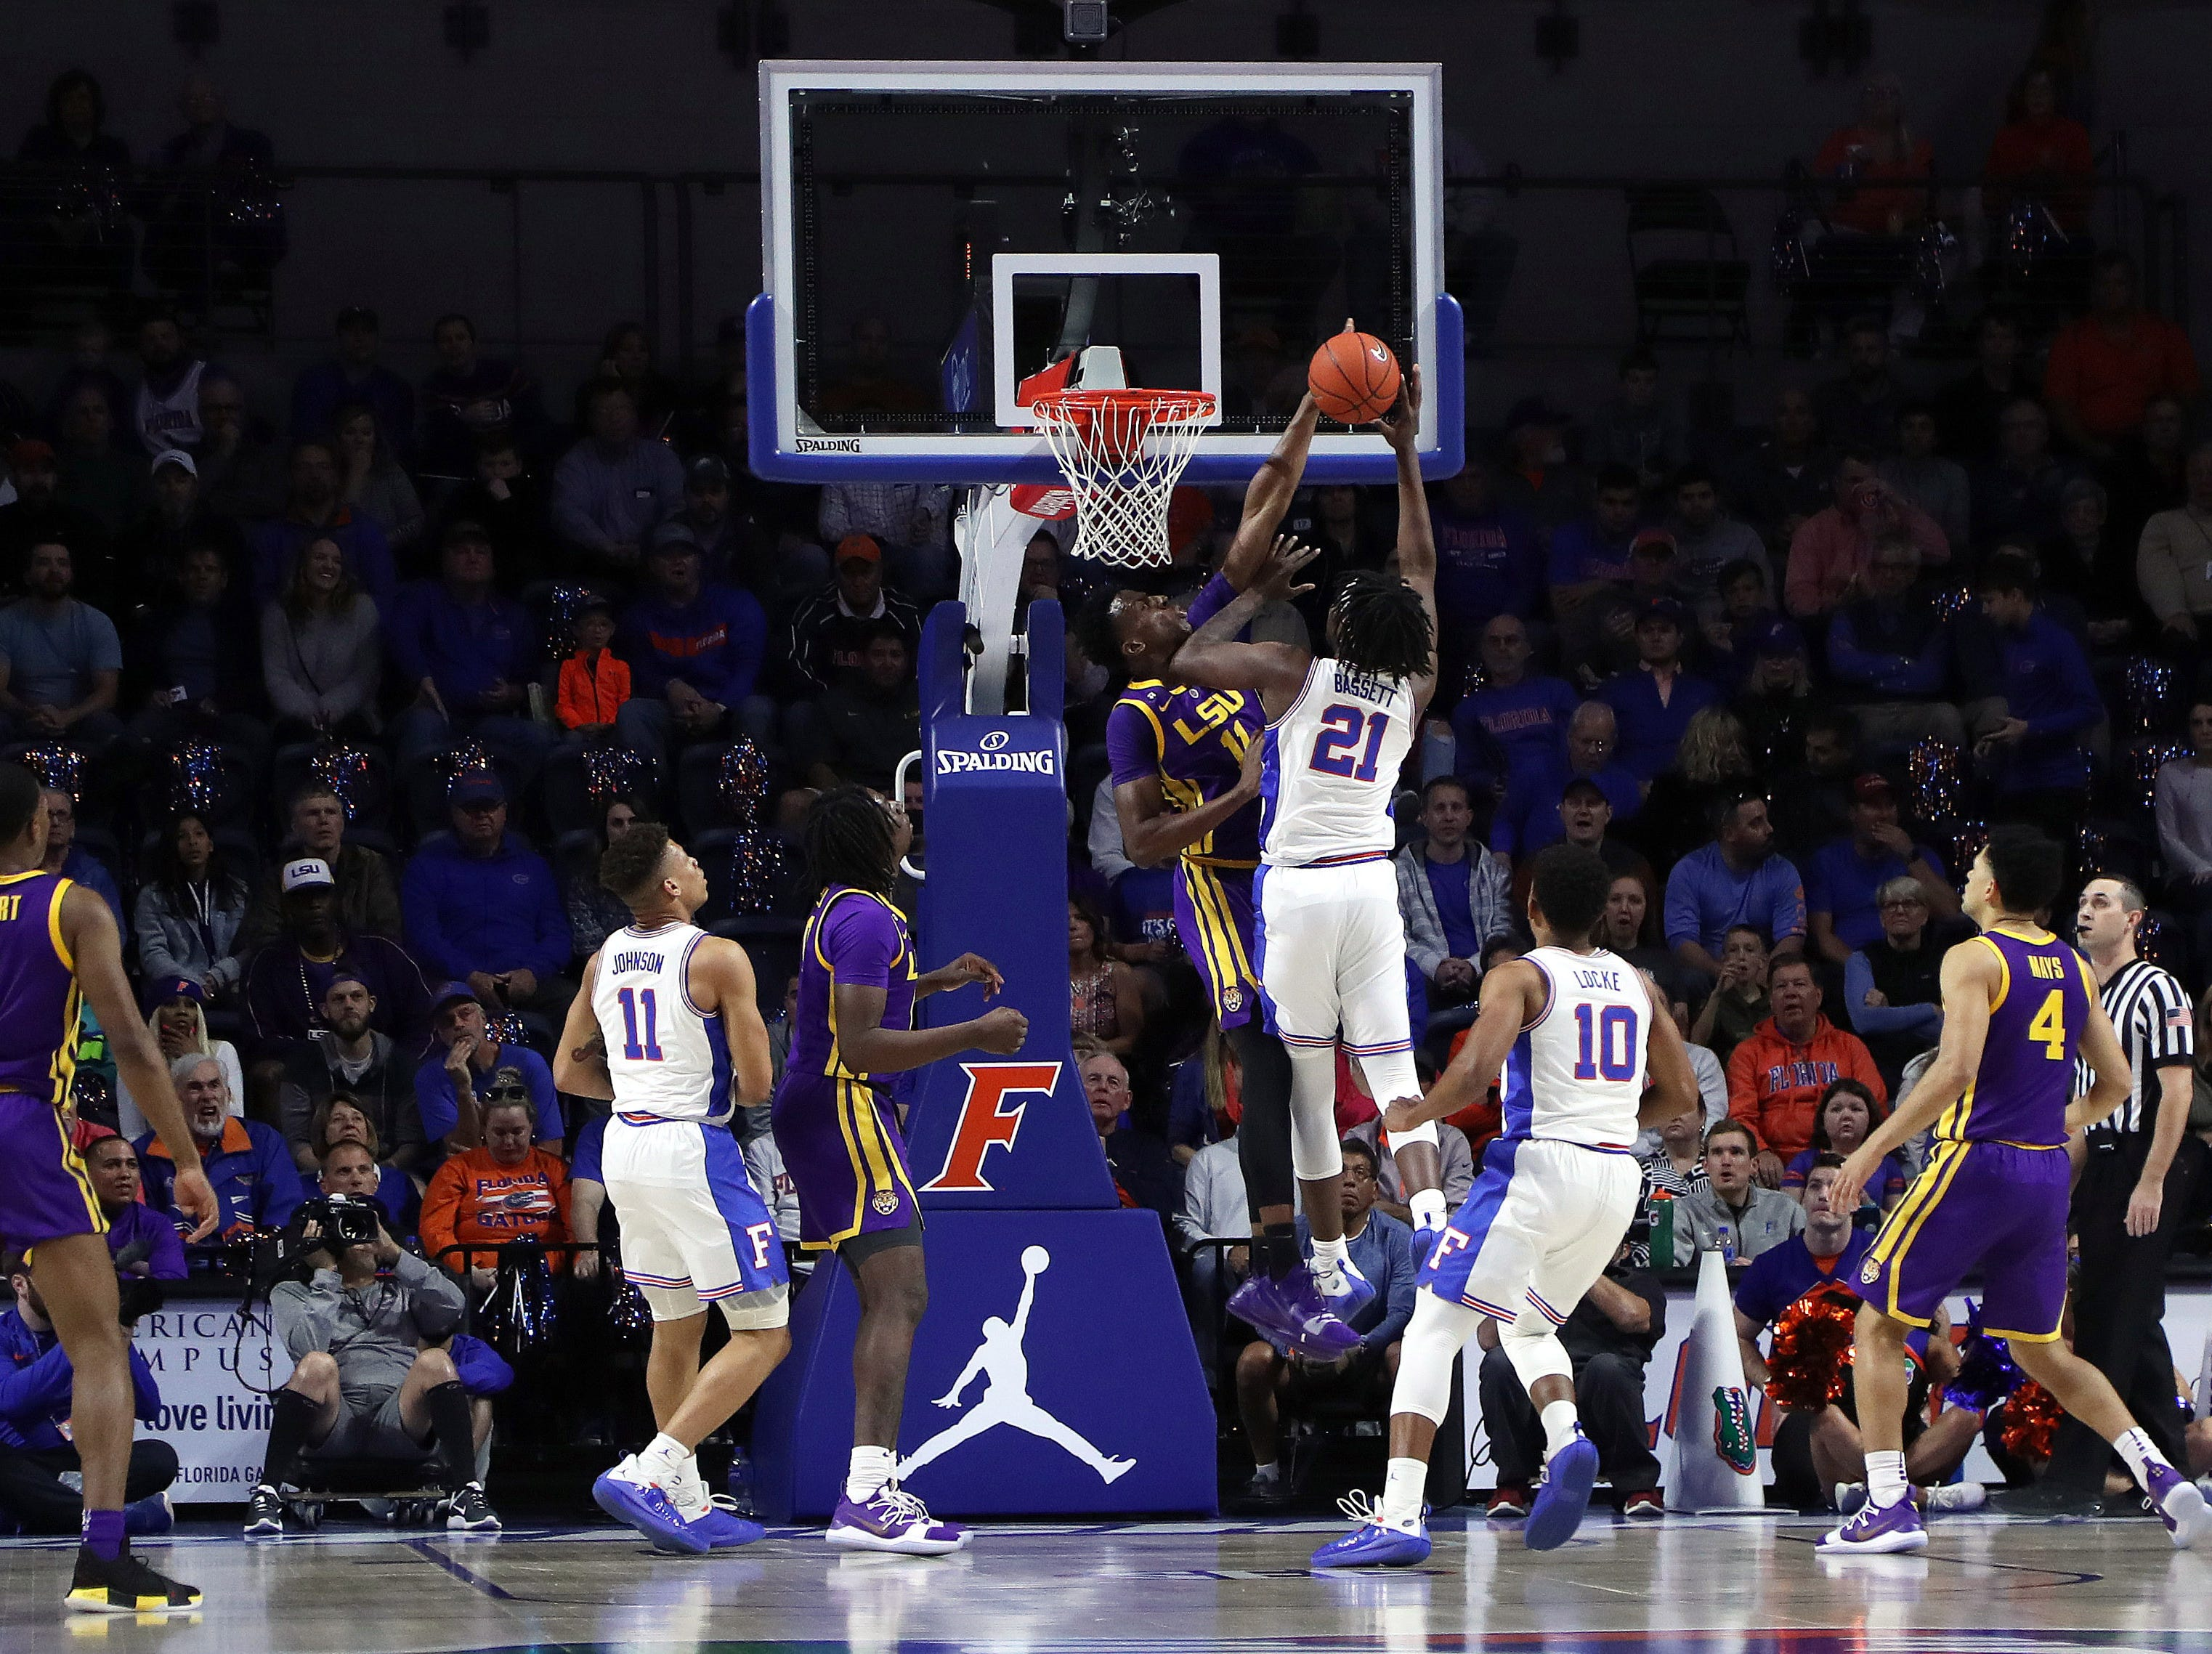 Mar 6, 2019; Gainesville, FL, USA; LSU Tigers forward Kavell Bigby-Williams (11) blocks Florida Gators forward Dontay Bassett (21) shot during the first half at Exactech Arena. Mandatory Credit: Kim Klement-USA TODAY Sports